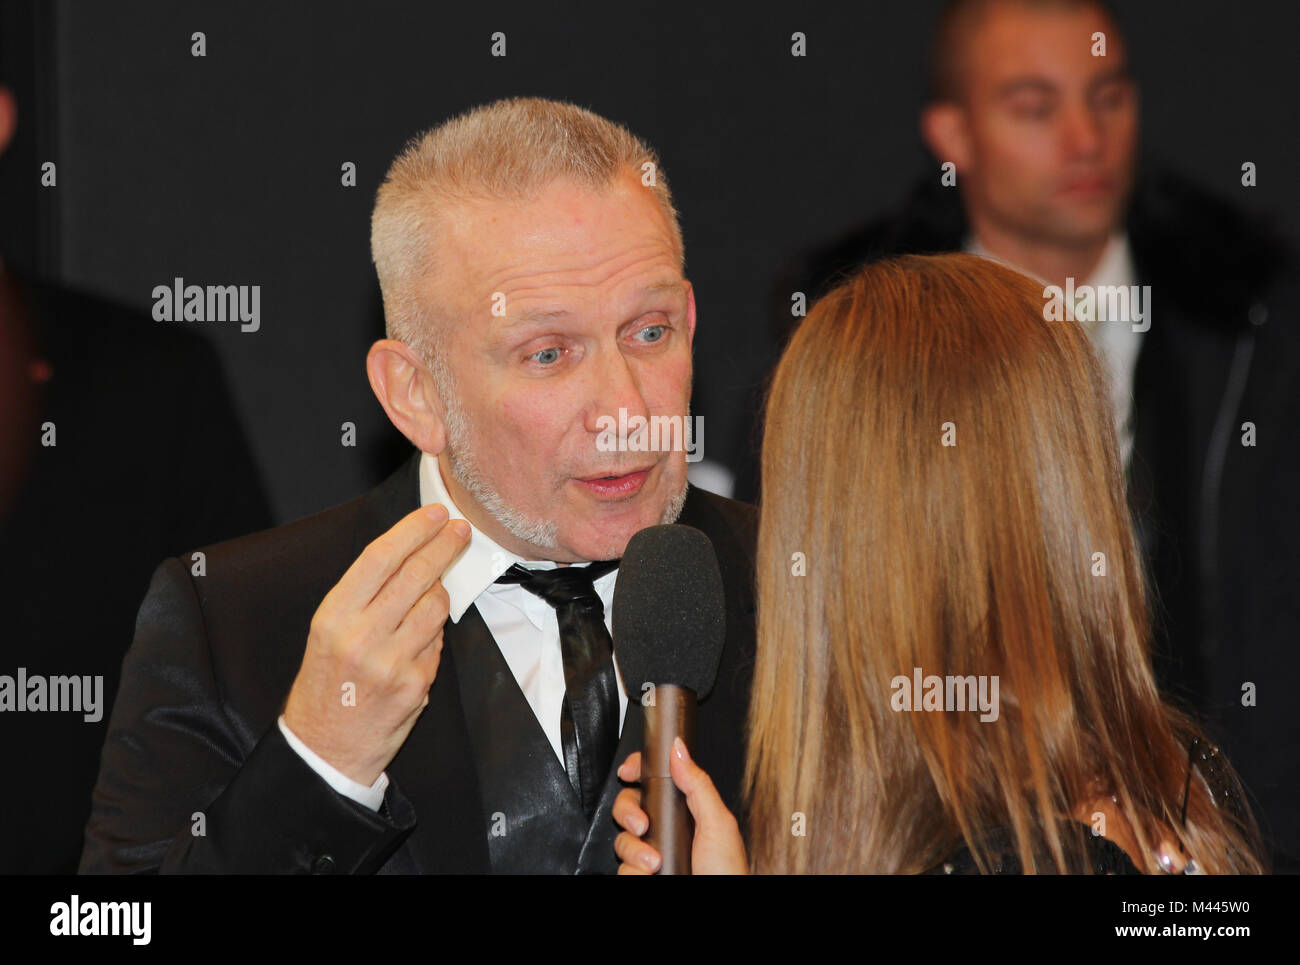 GQ Men of the Year award: Jean Paul Gaultier - Stock Image